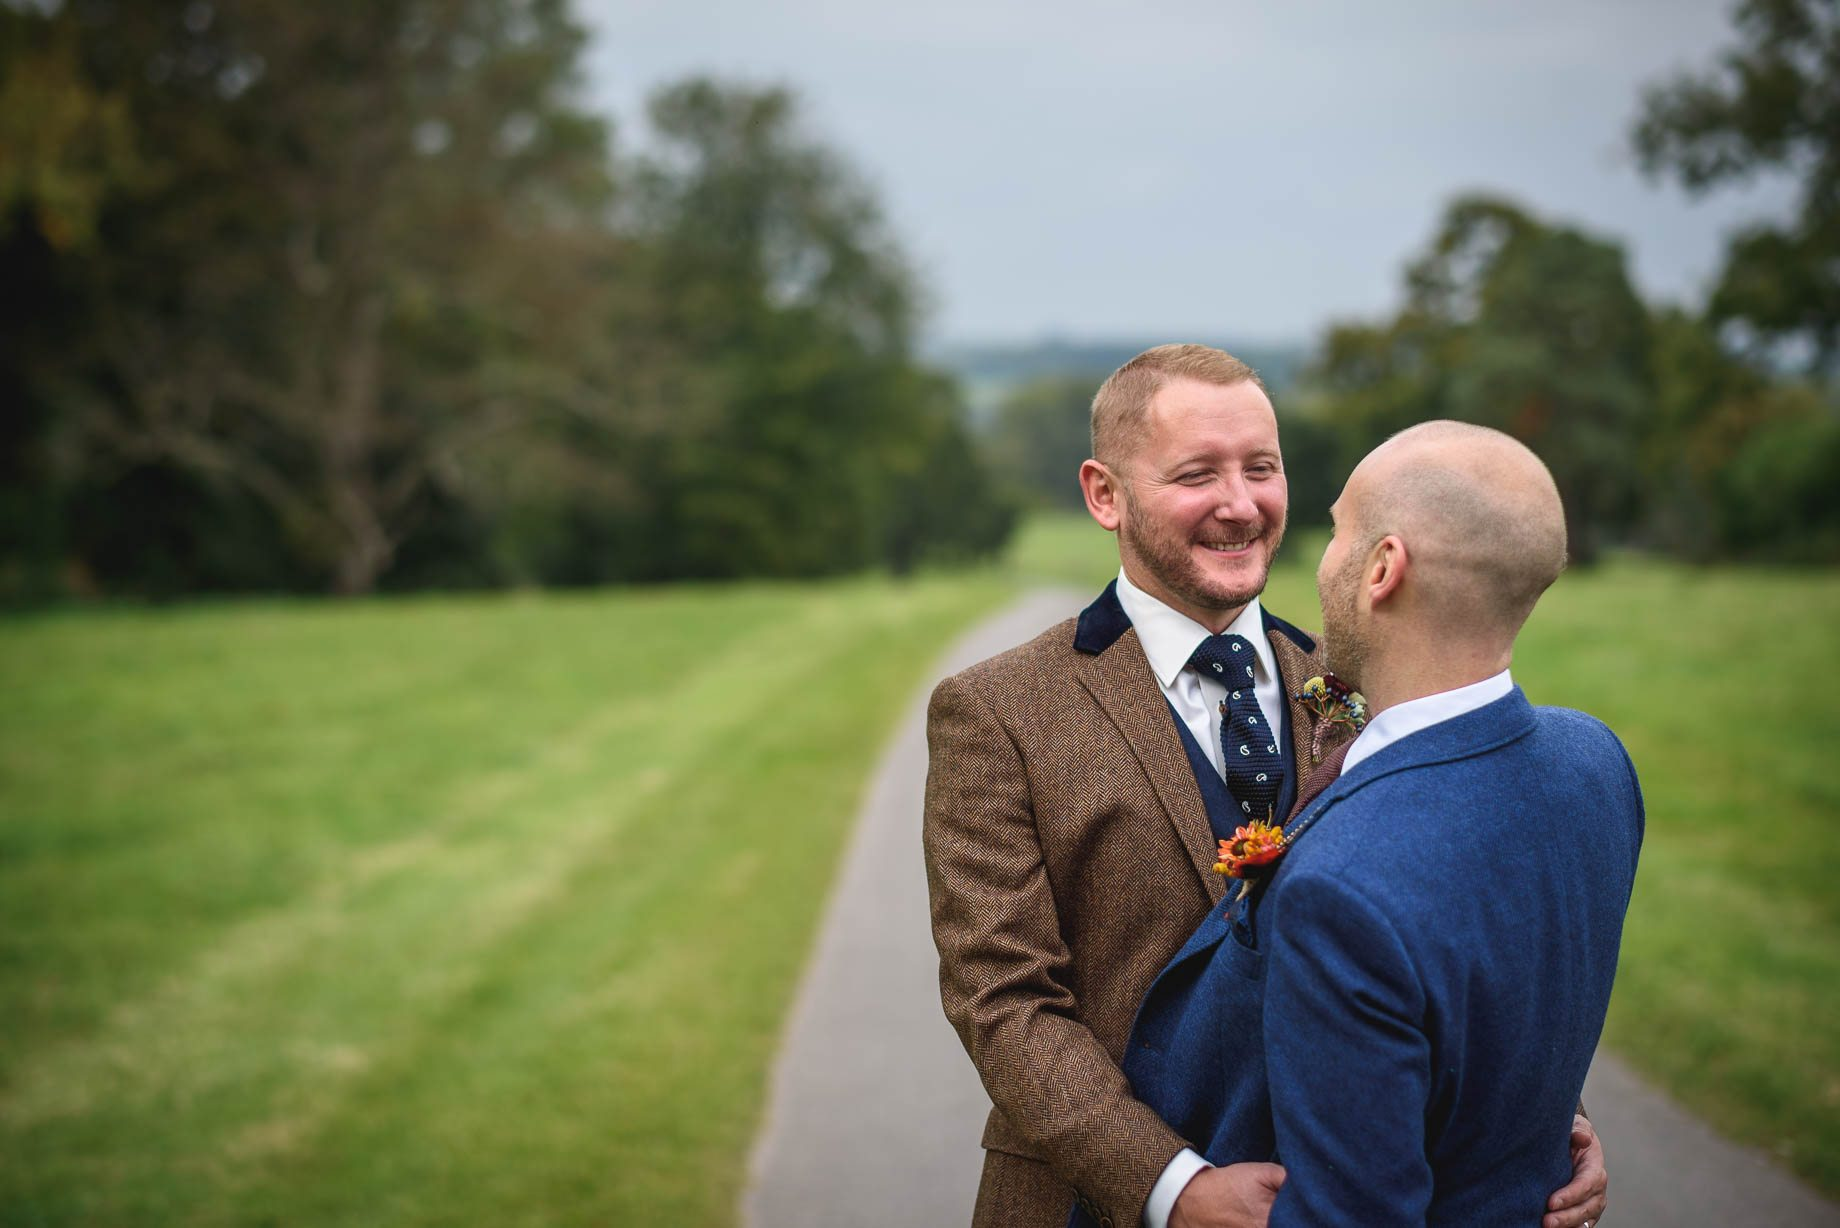 gay-wedding-photography-at-wasing-park-guy-collier-photography-ben-and-stephen-100-of-202